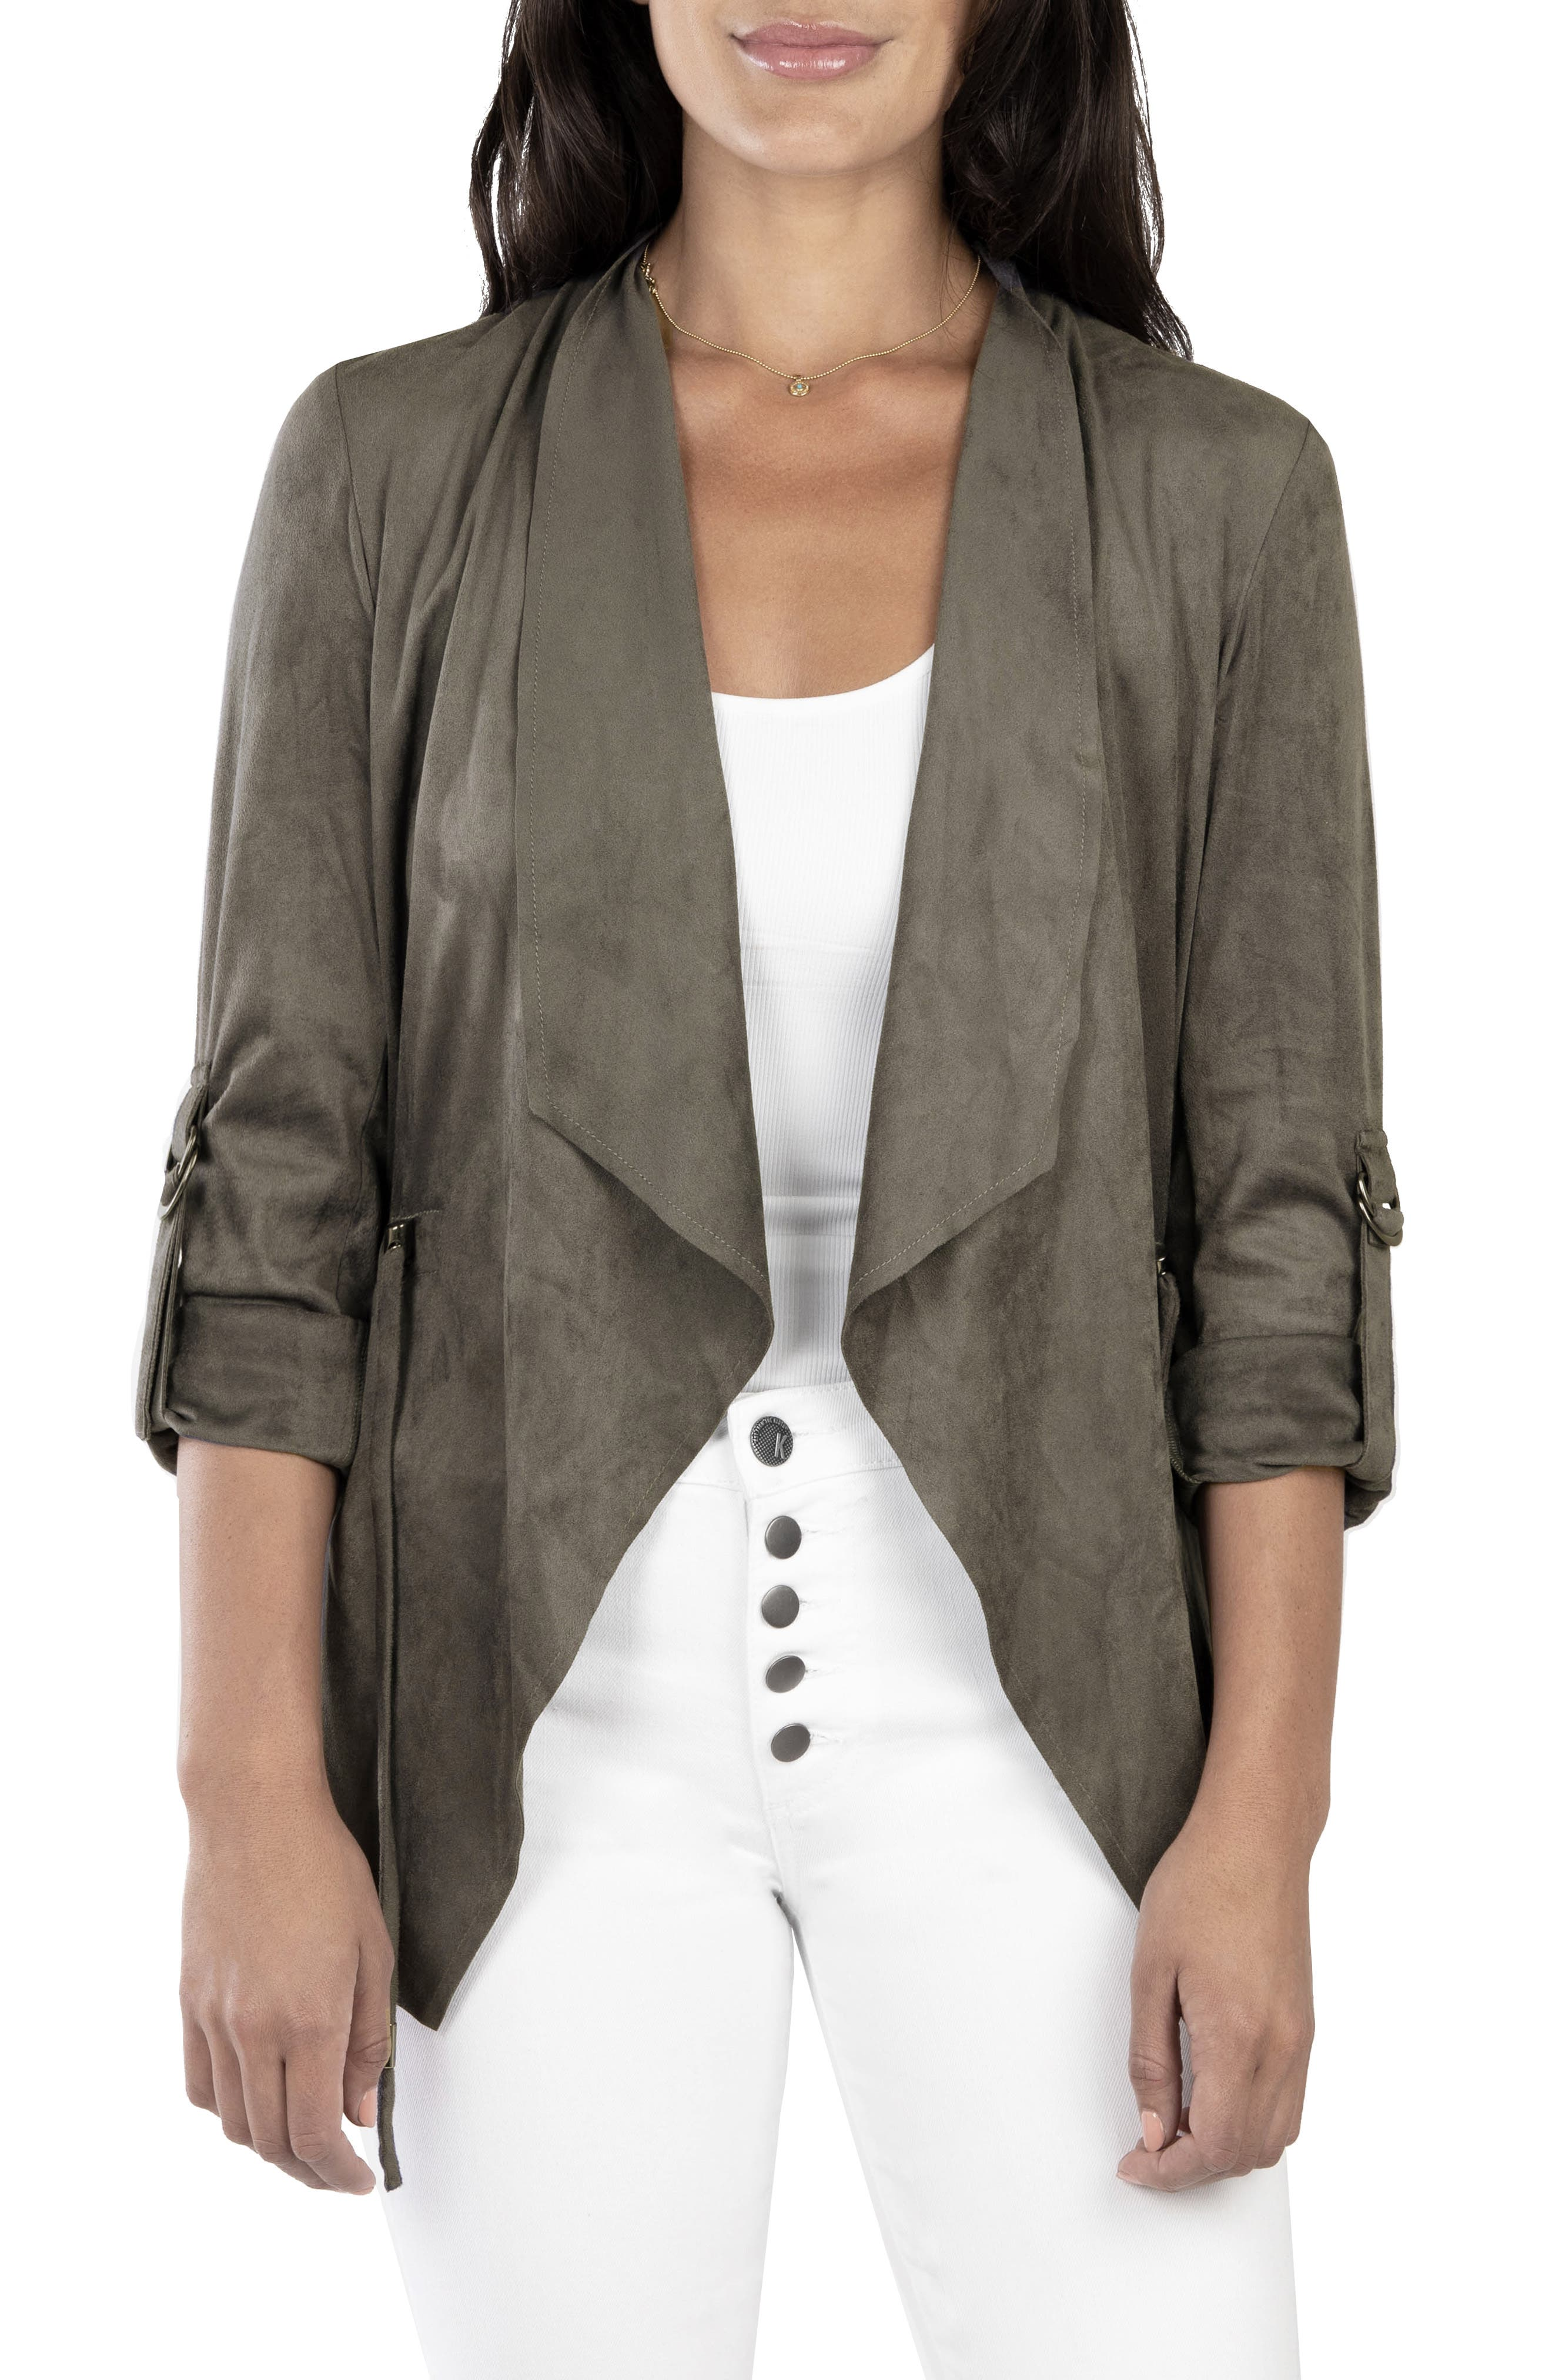 A work-to-weekend jacket with the luxe look of suede features easy drape-front styling with a cinched waist for fit-defining flattery. Utility-style D-ring tabs roll the sleeves for a more relaxed attitude. Style Name: Kut From The Kloth Dianne Faux Suede Jacket. Style Number: 5942945. Available in stores.